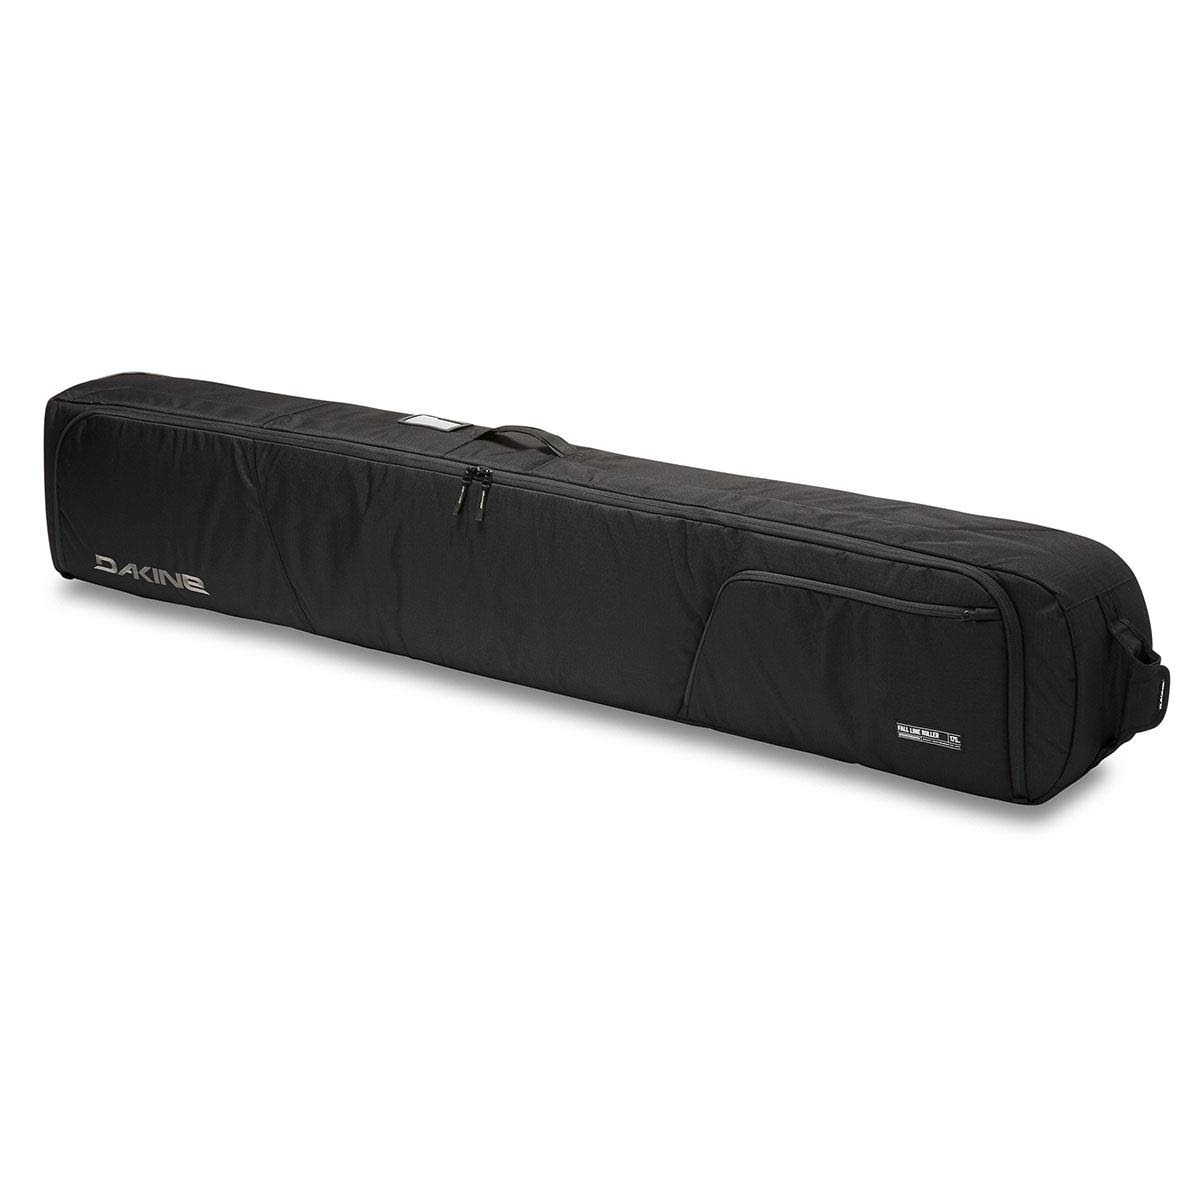 Dakine Fall Line Ski Roller Bag - Black, 190cm